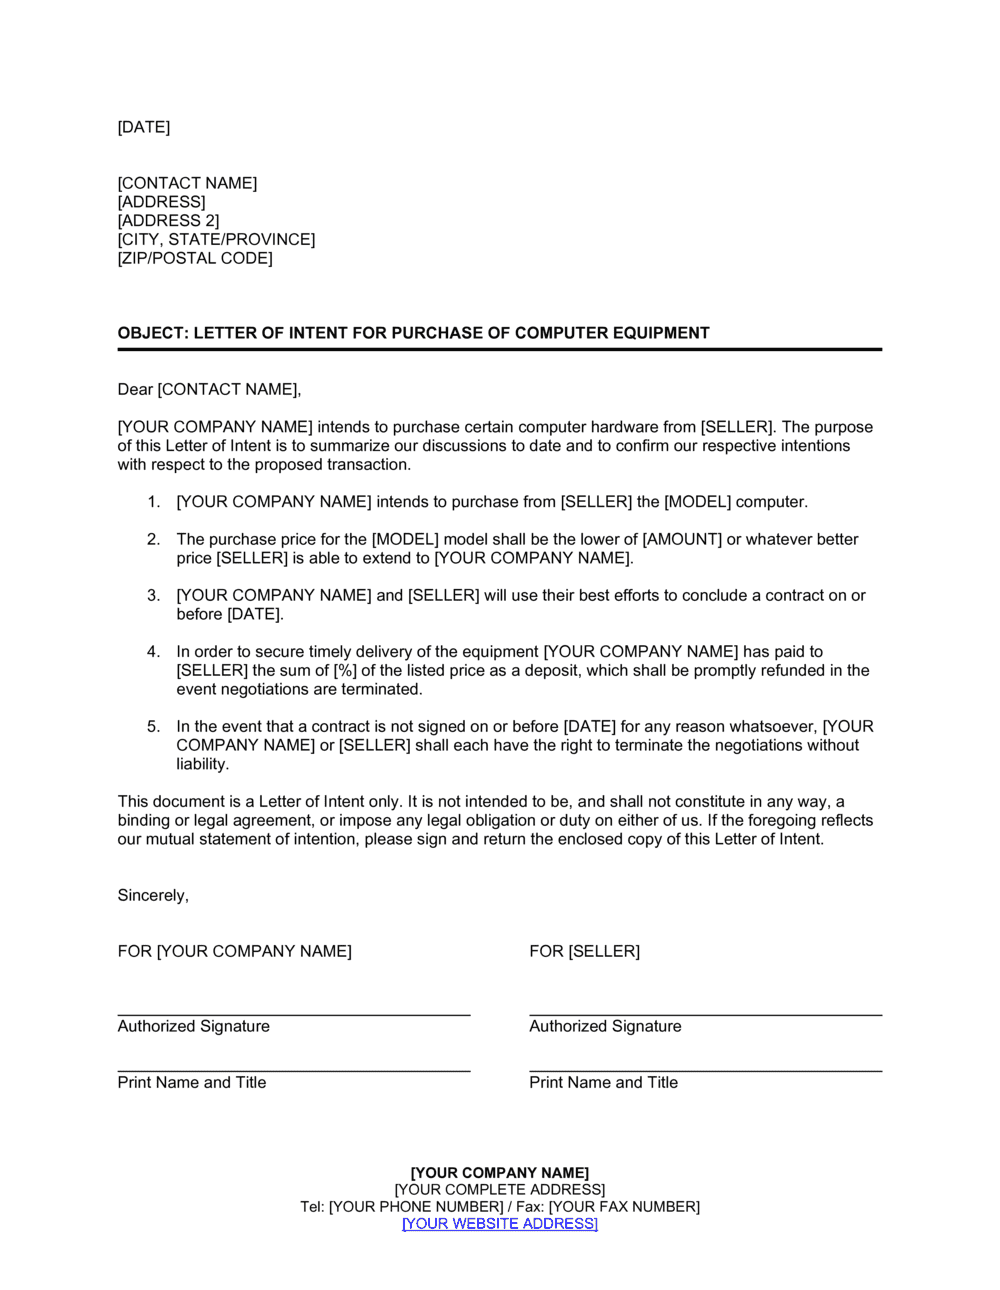 Business-in-a-Box's Letter of Intent for Purchase of Computer Equipment Template